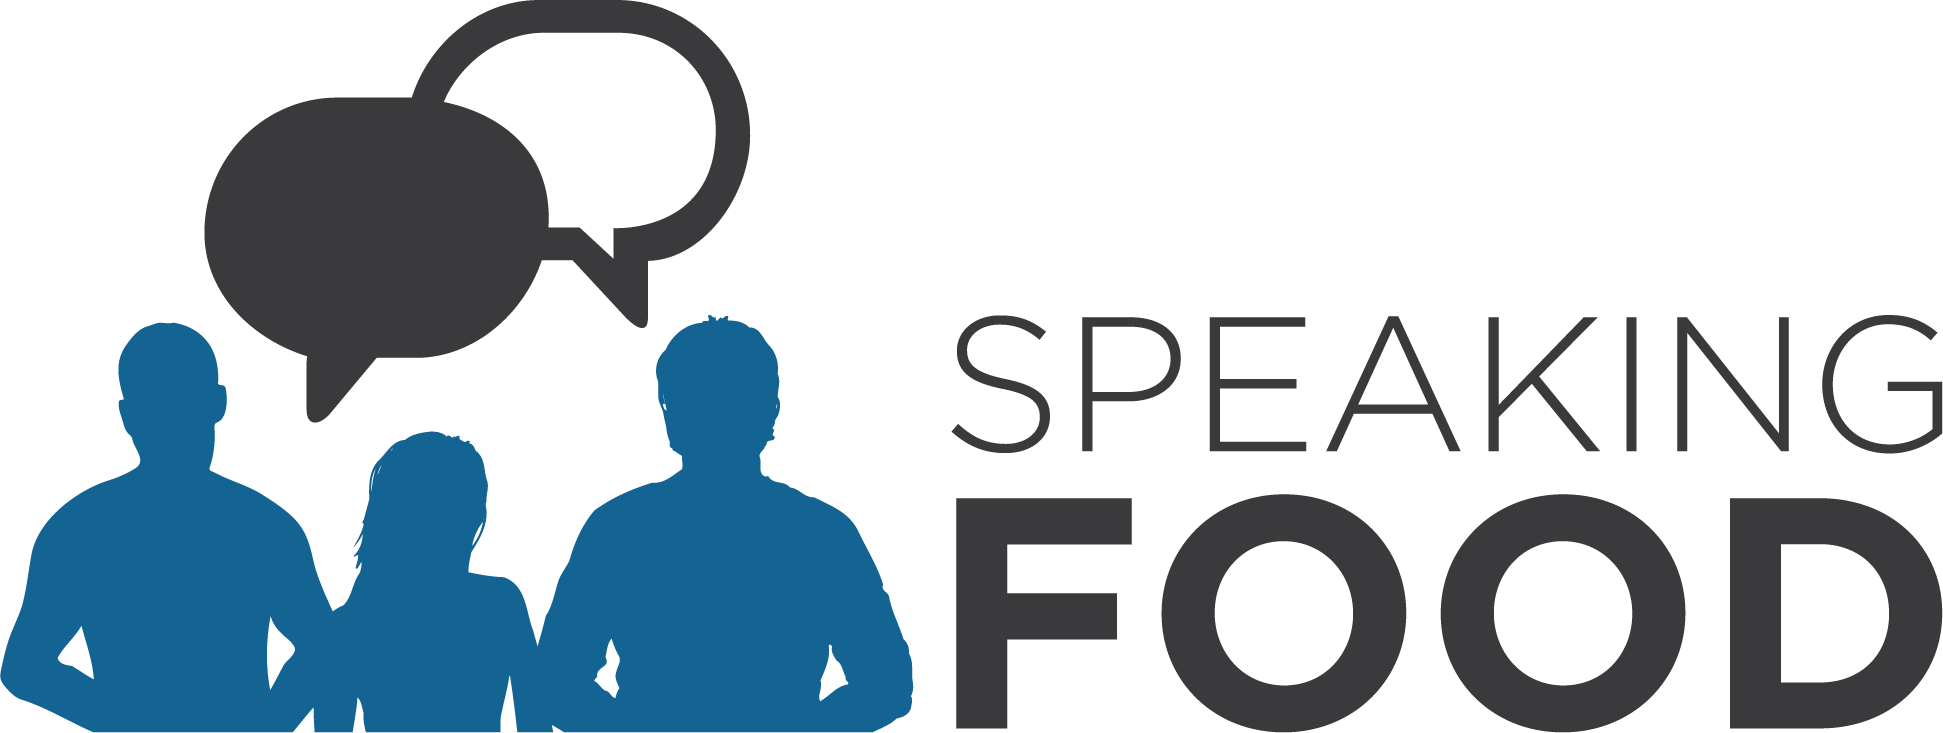 Speaking Food_LOGO - Blue-Black